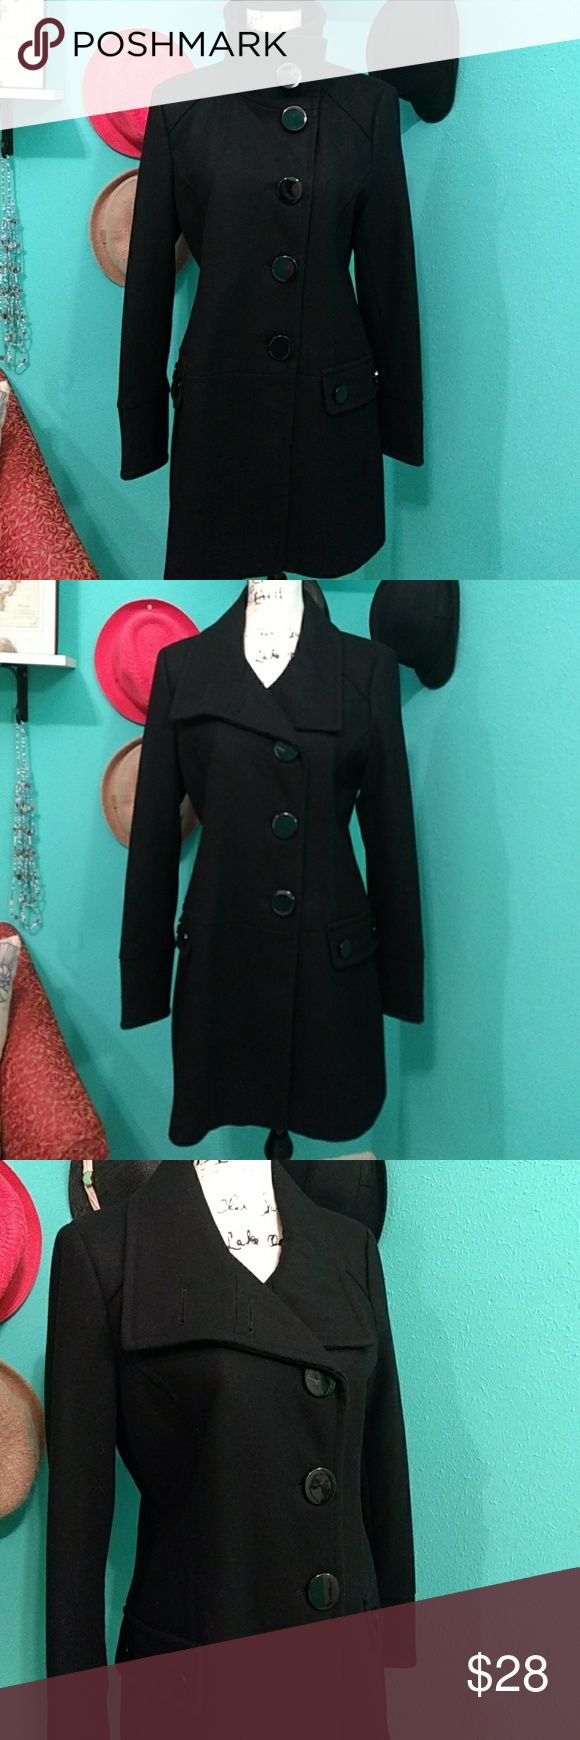 Black Pea Coat M Wool Jacket Large Button Single breasted button down trench coat. Dry clean only. Nice used condition. No stains, Rips or tares. signature studio Jackets & Coats Pea Coats